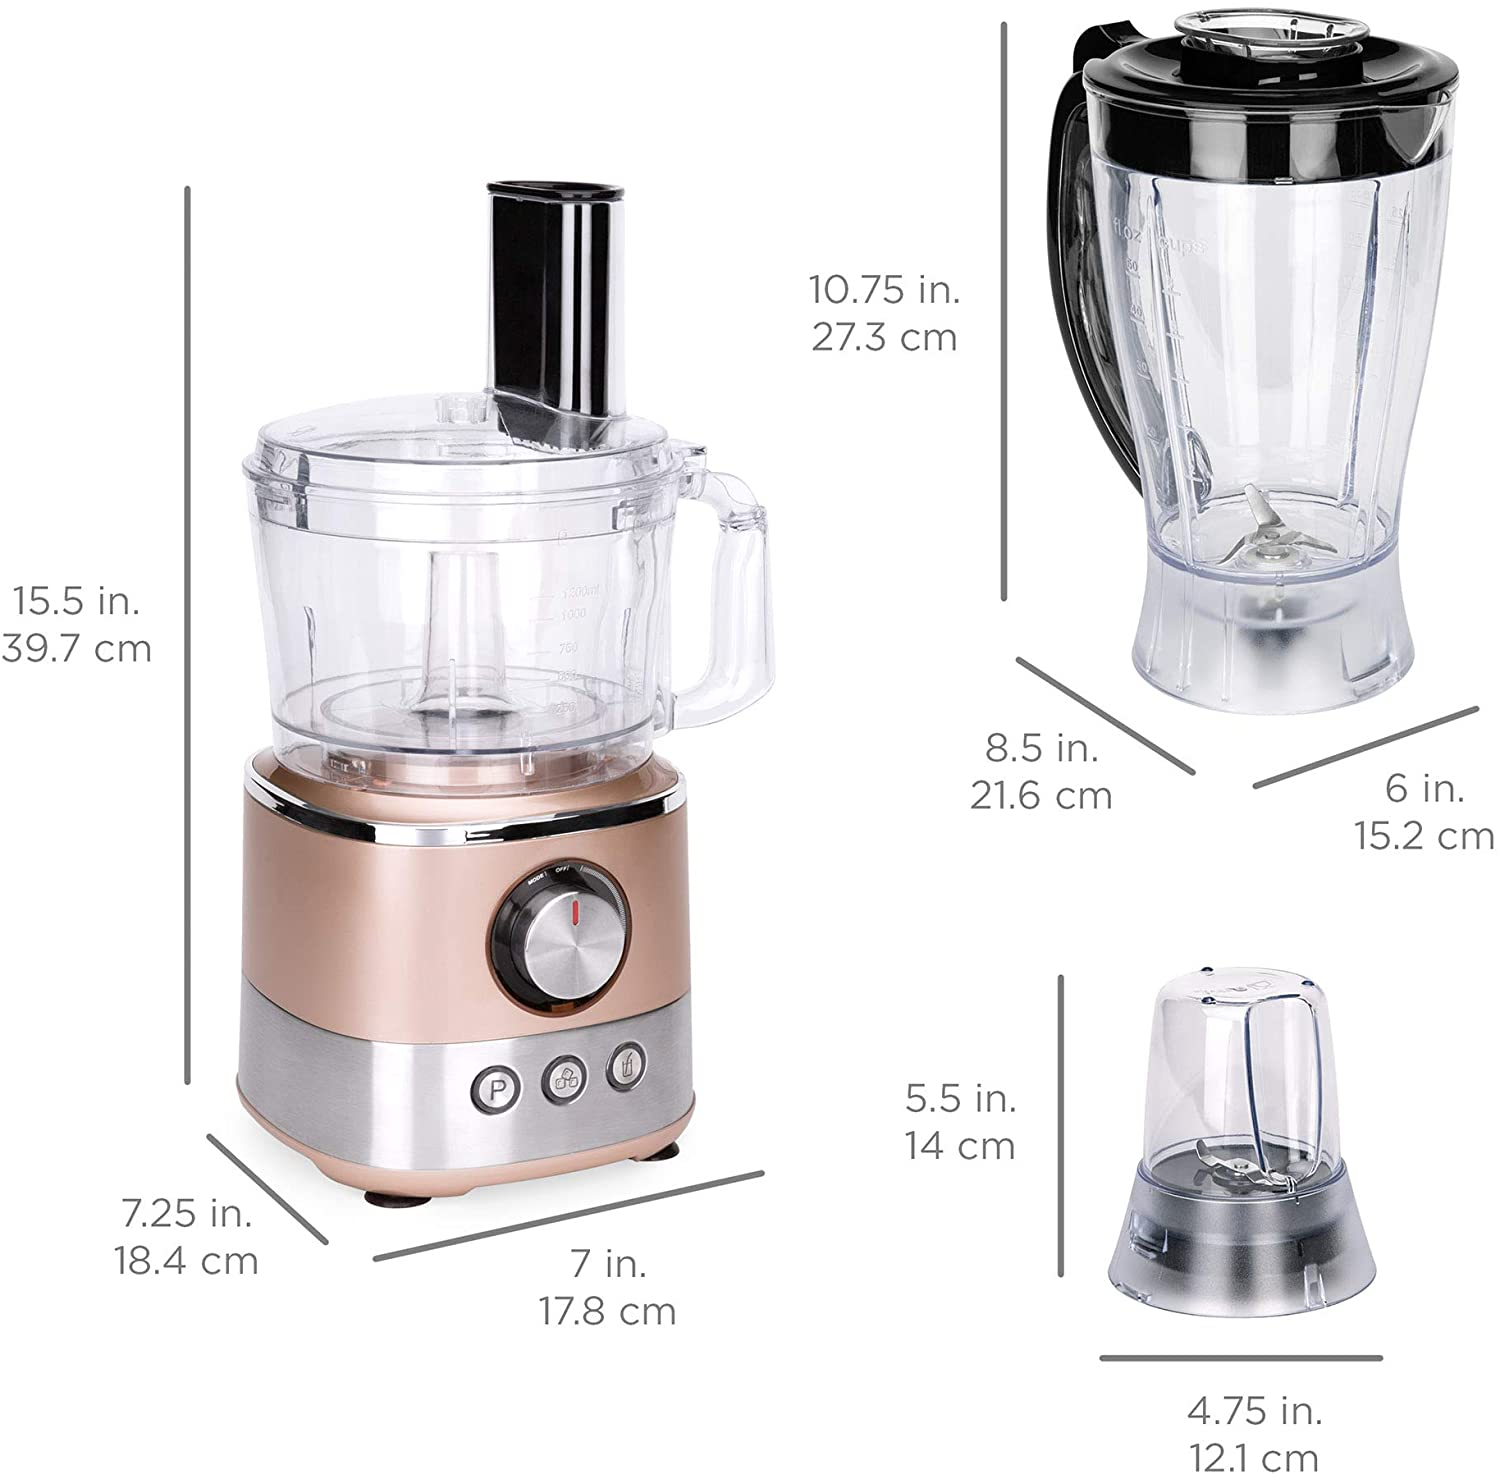 5 Best Blenders Food Processors - Expert Reviews [Upd. Sept. 2020]